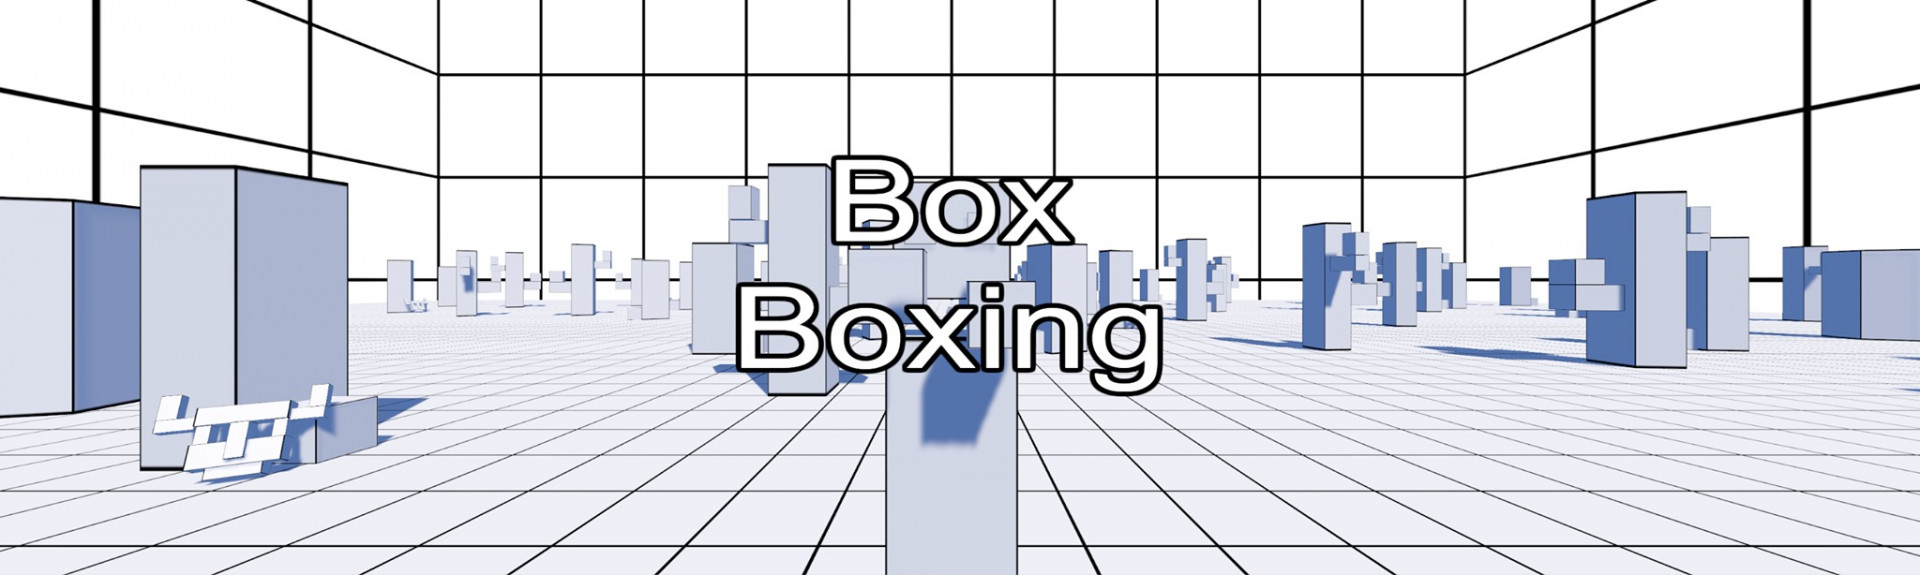 Box:Boxing